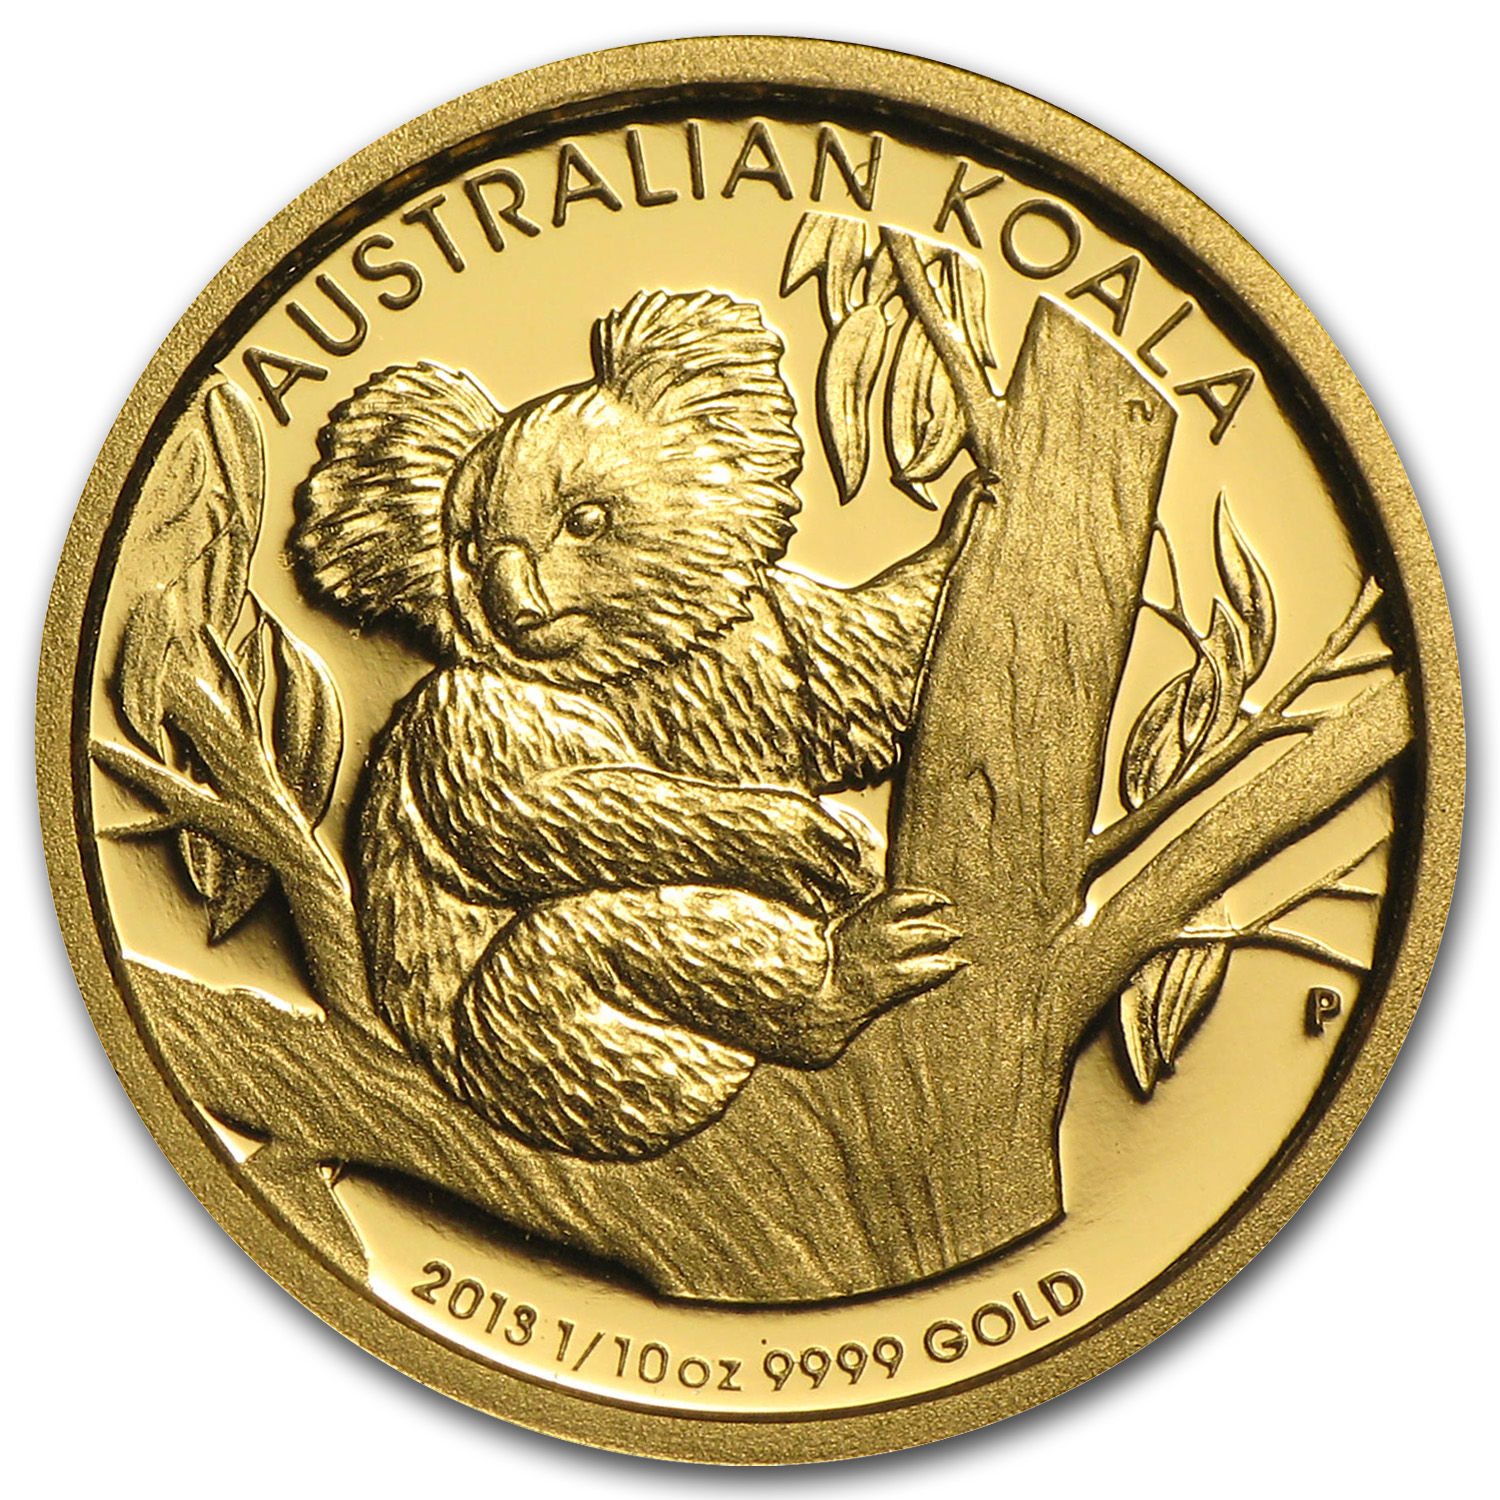 2013 Australia 1/10 oz Gold Koala Proof